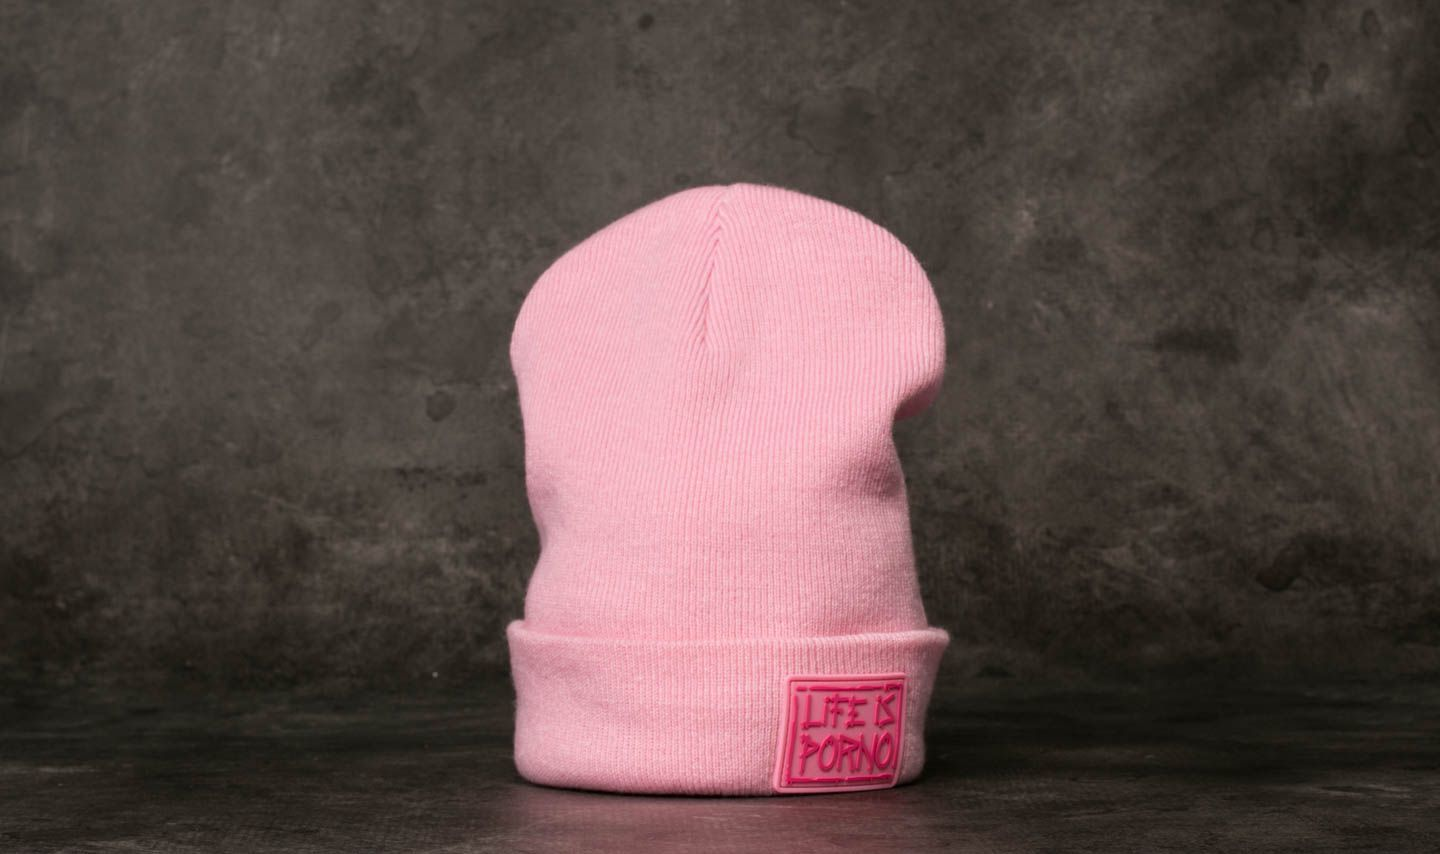 Life is Porno Taxi Beanie Pink